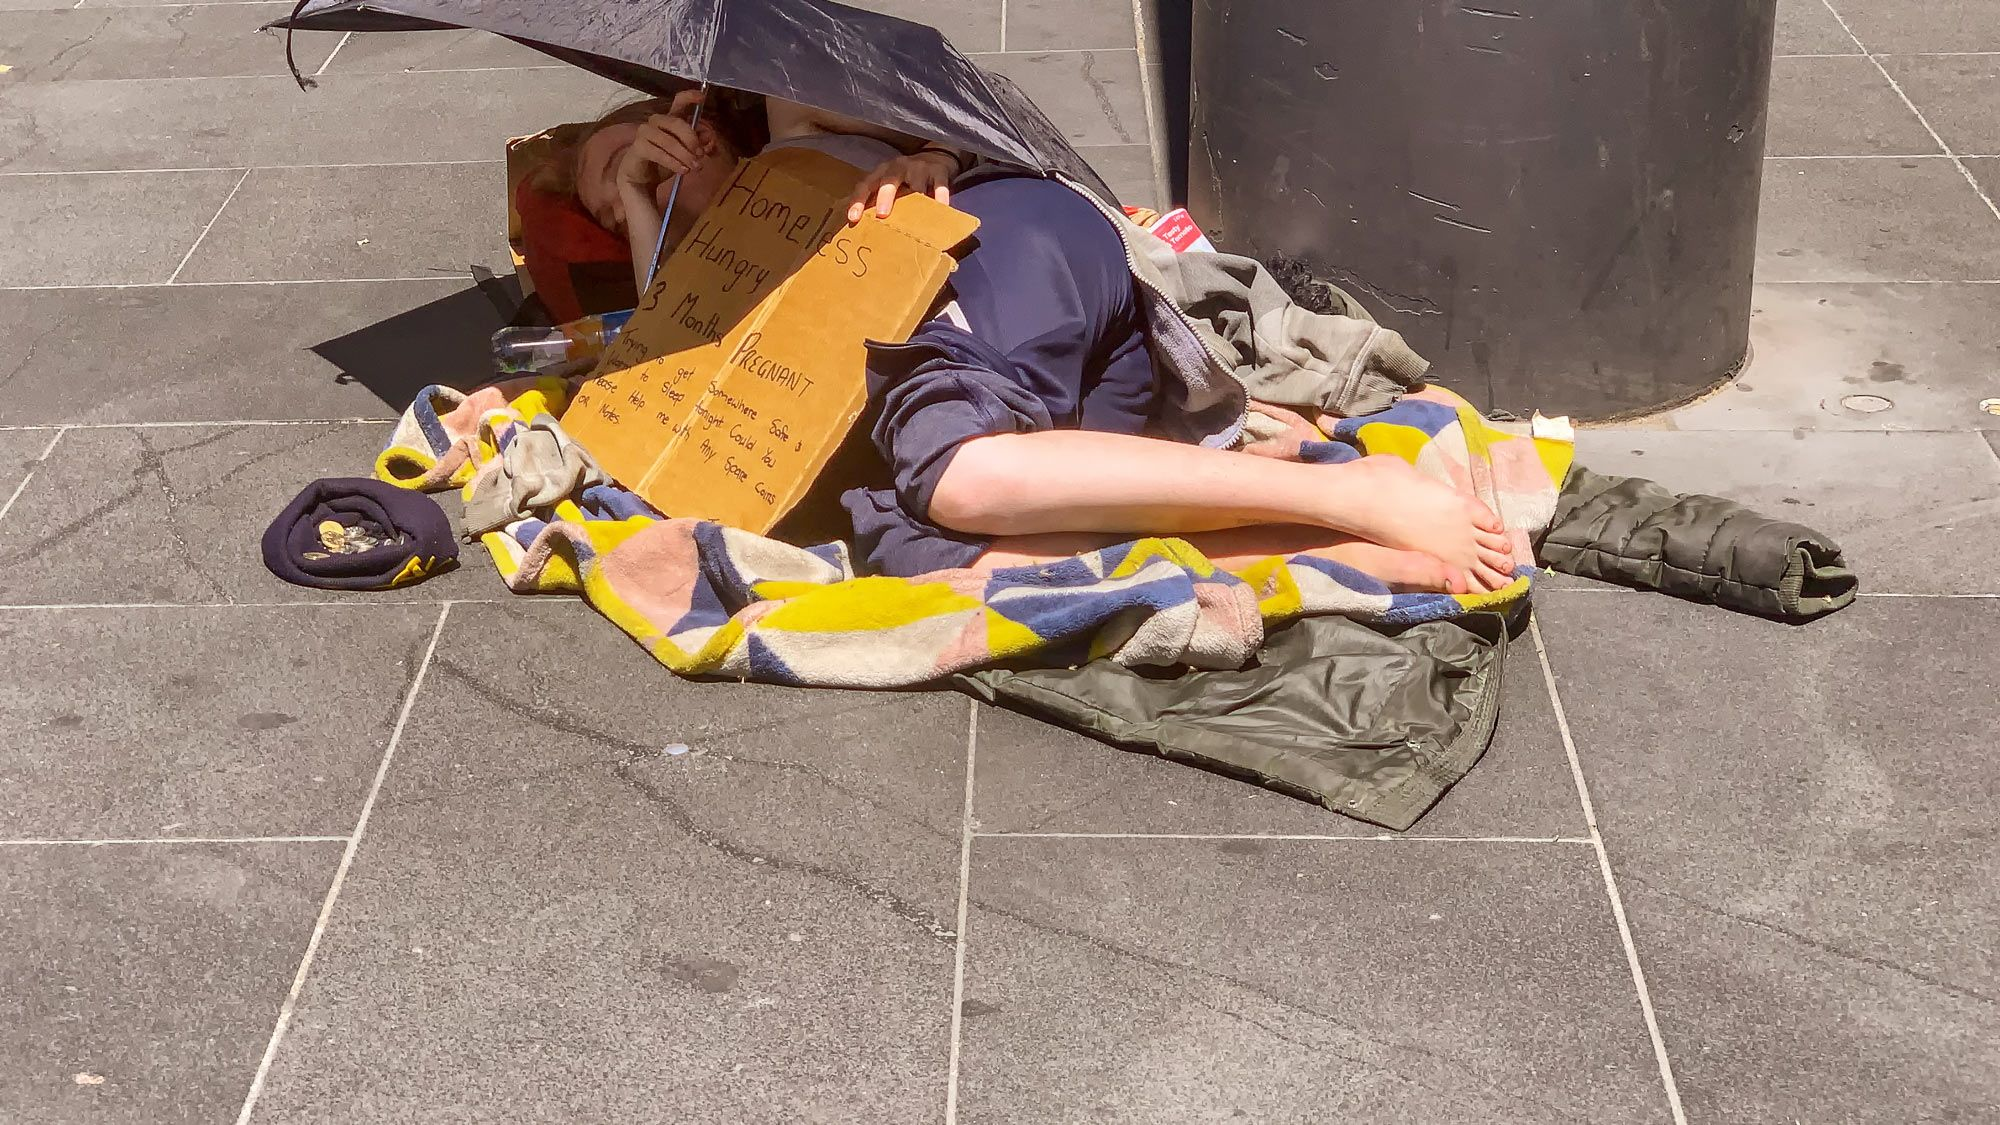 pregnant and homeless woman sleeping on the floor